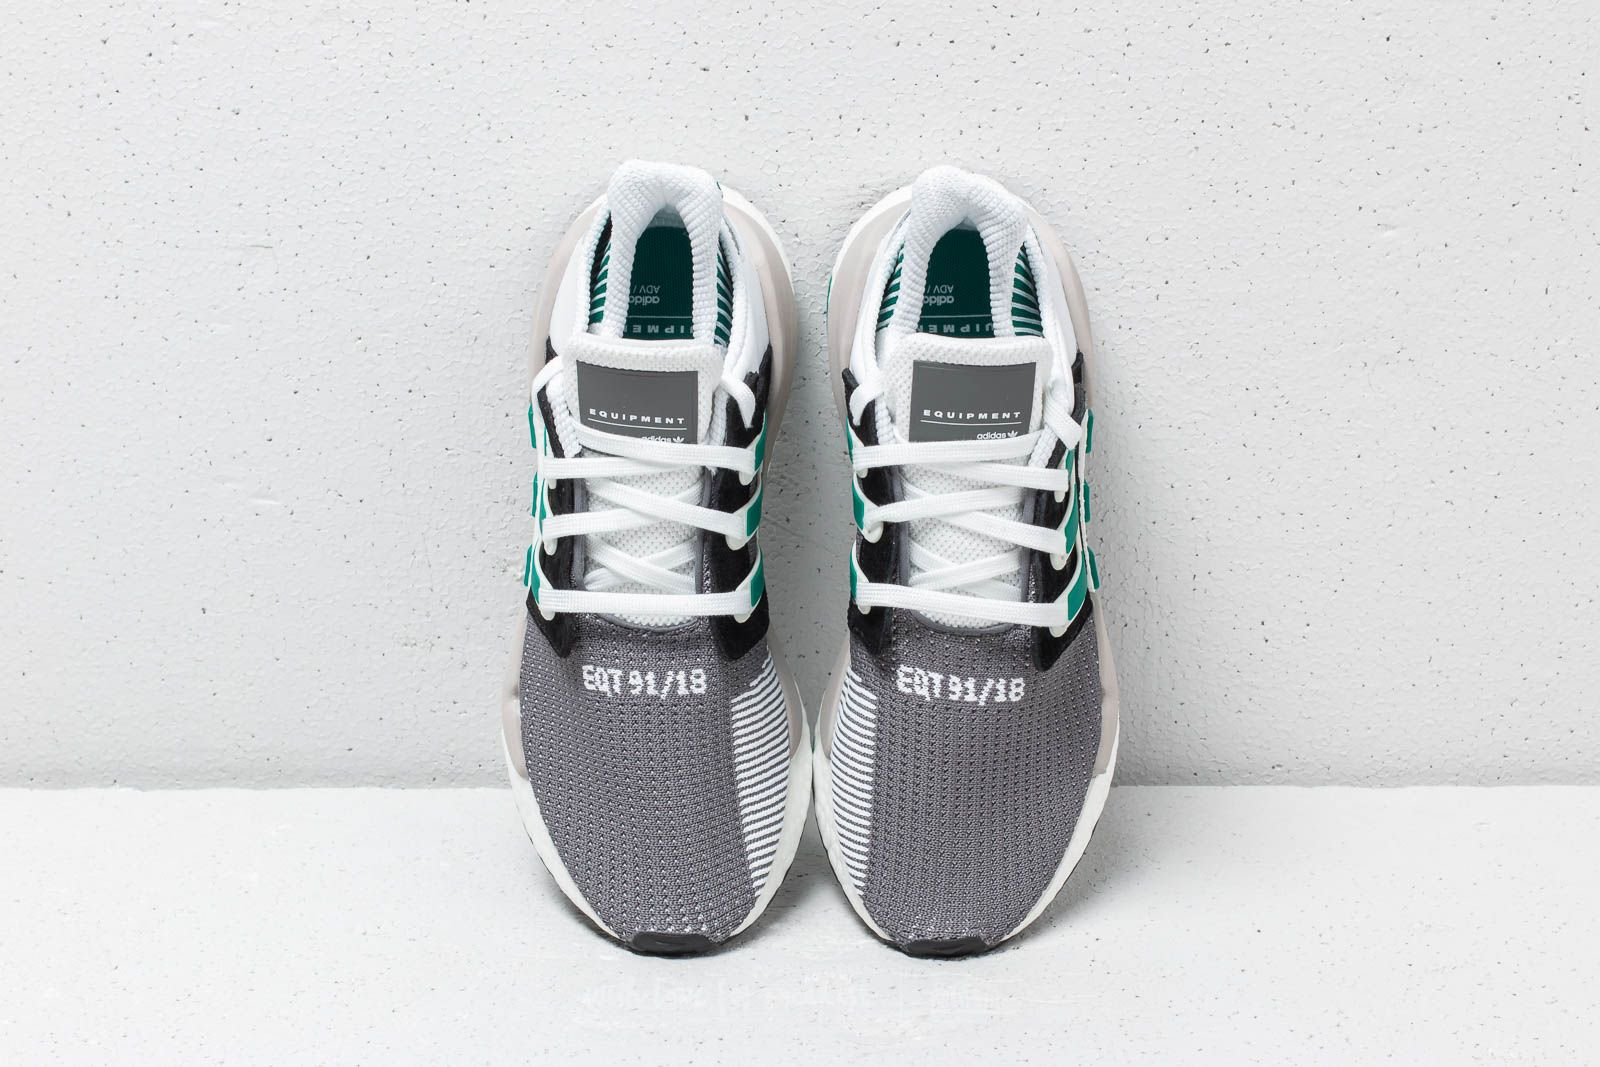 finest selection 76fdb 205e7 adidas EQT Support 9118 Core Black Clear Granite Sub Green at a